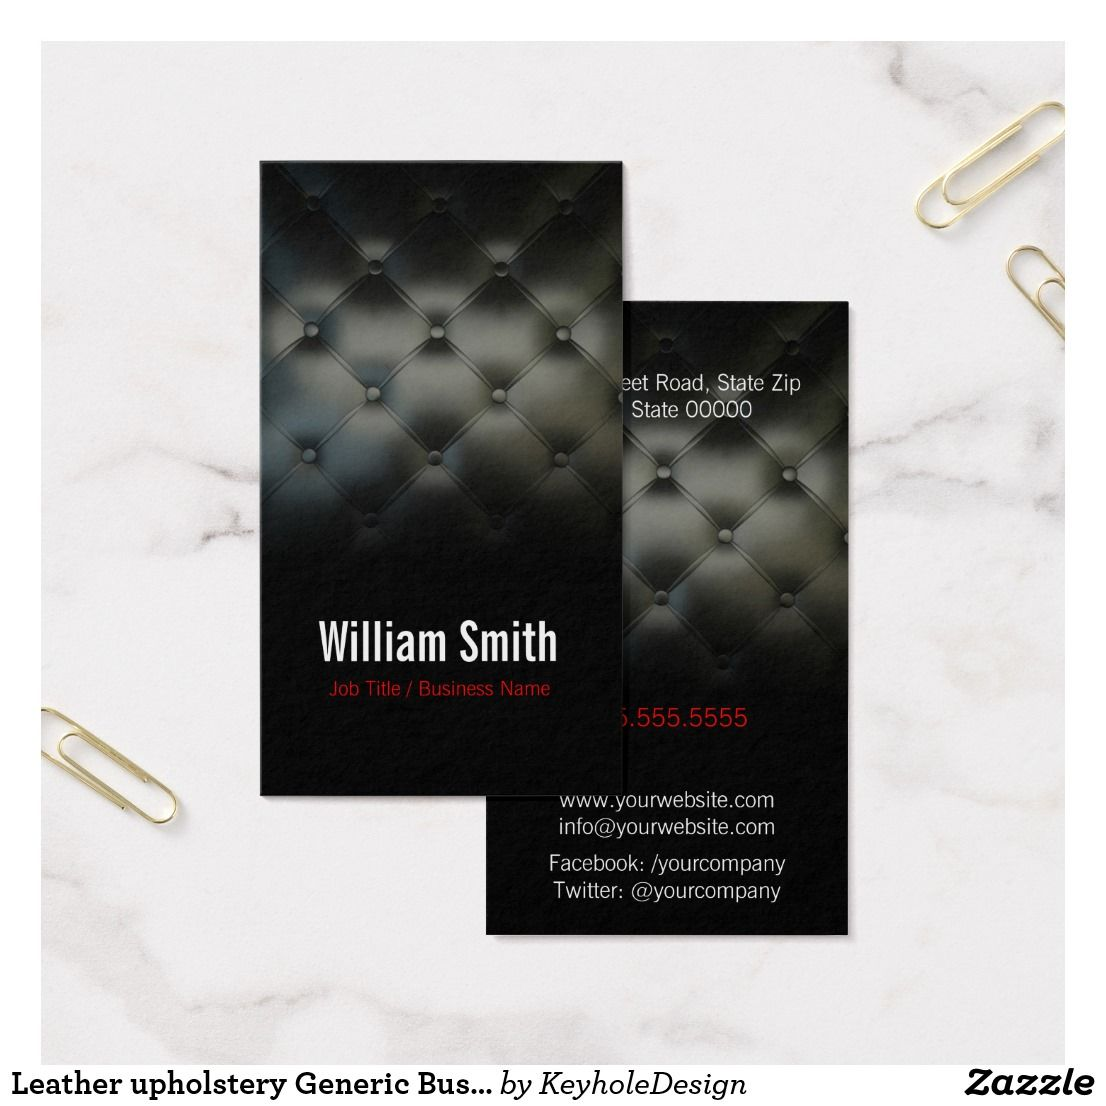 Leather upholstery Generic Business card | Pinterest | Upholstery ...